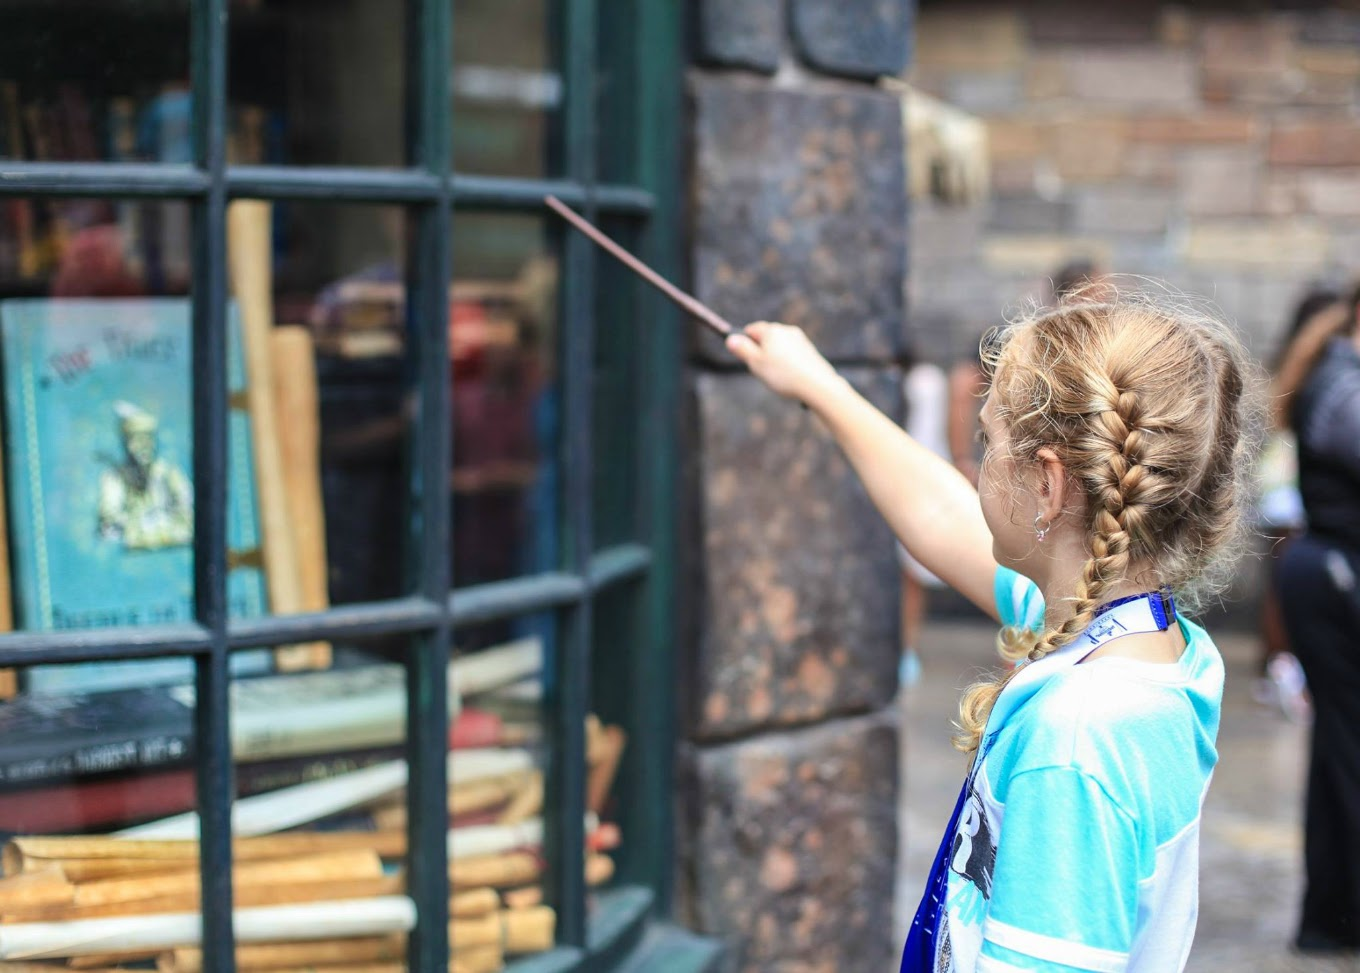 11 Secret Spots In Universal S Diagon Alley To Find Harry Potter Spells And More The wand has 3 charges. harry potter spells